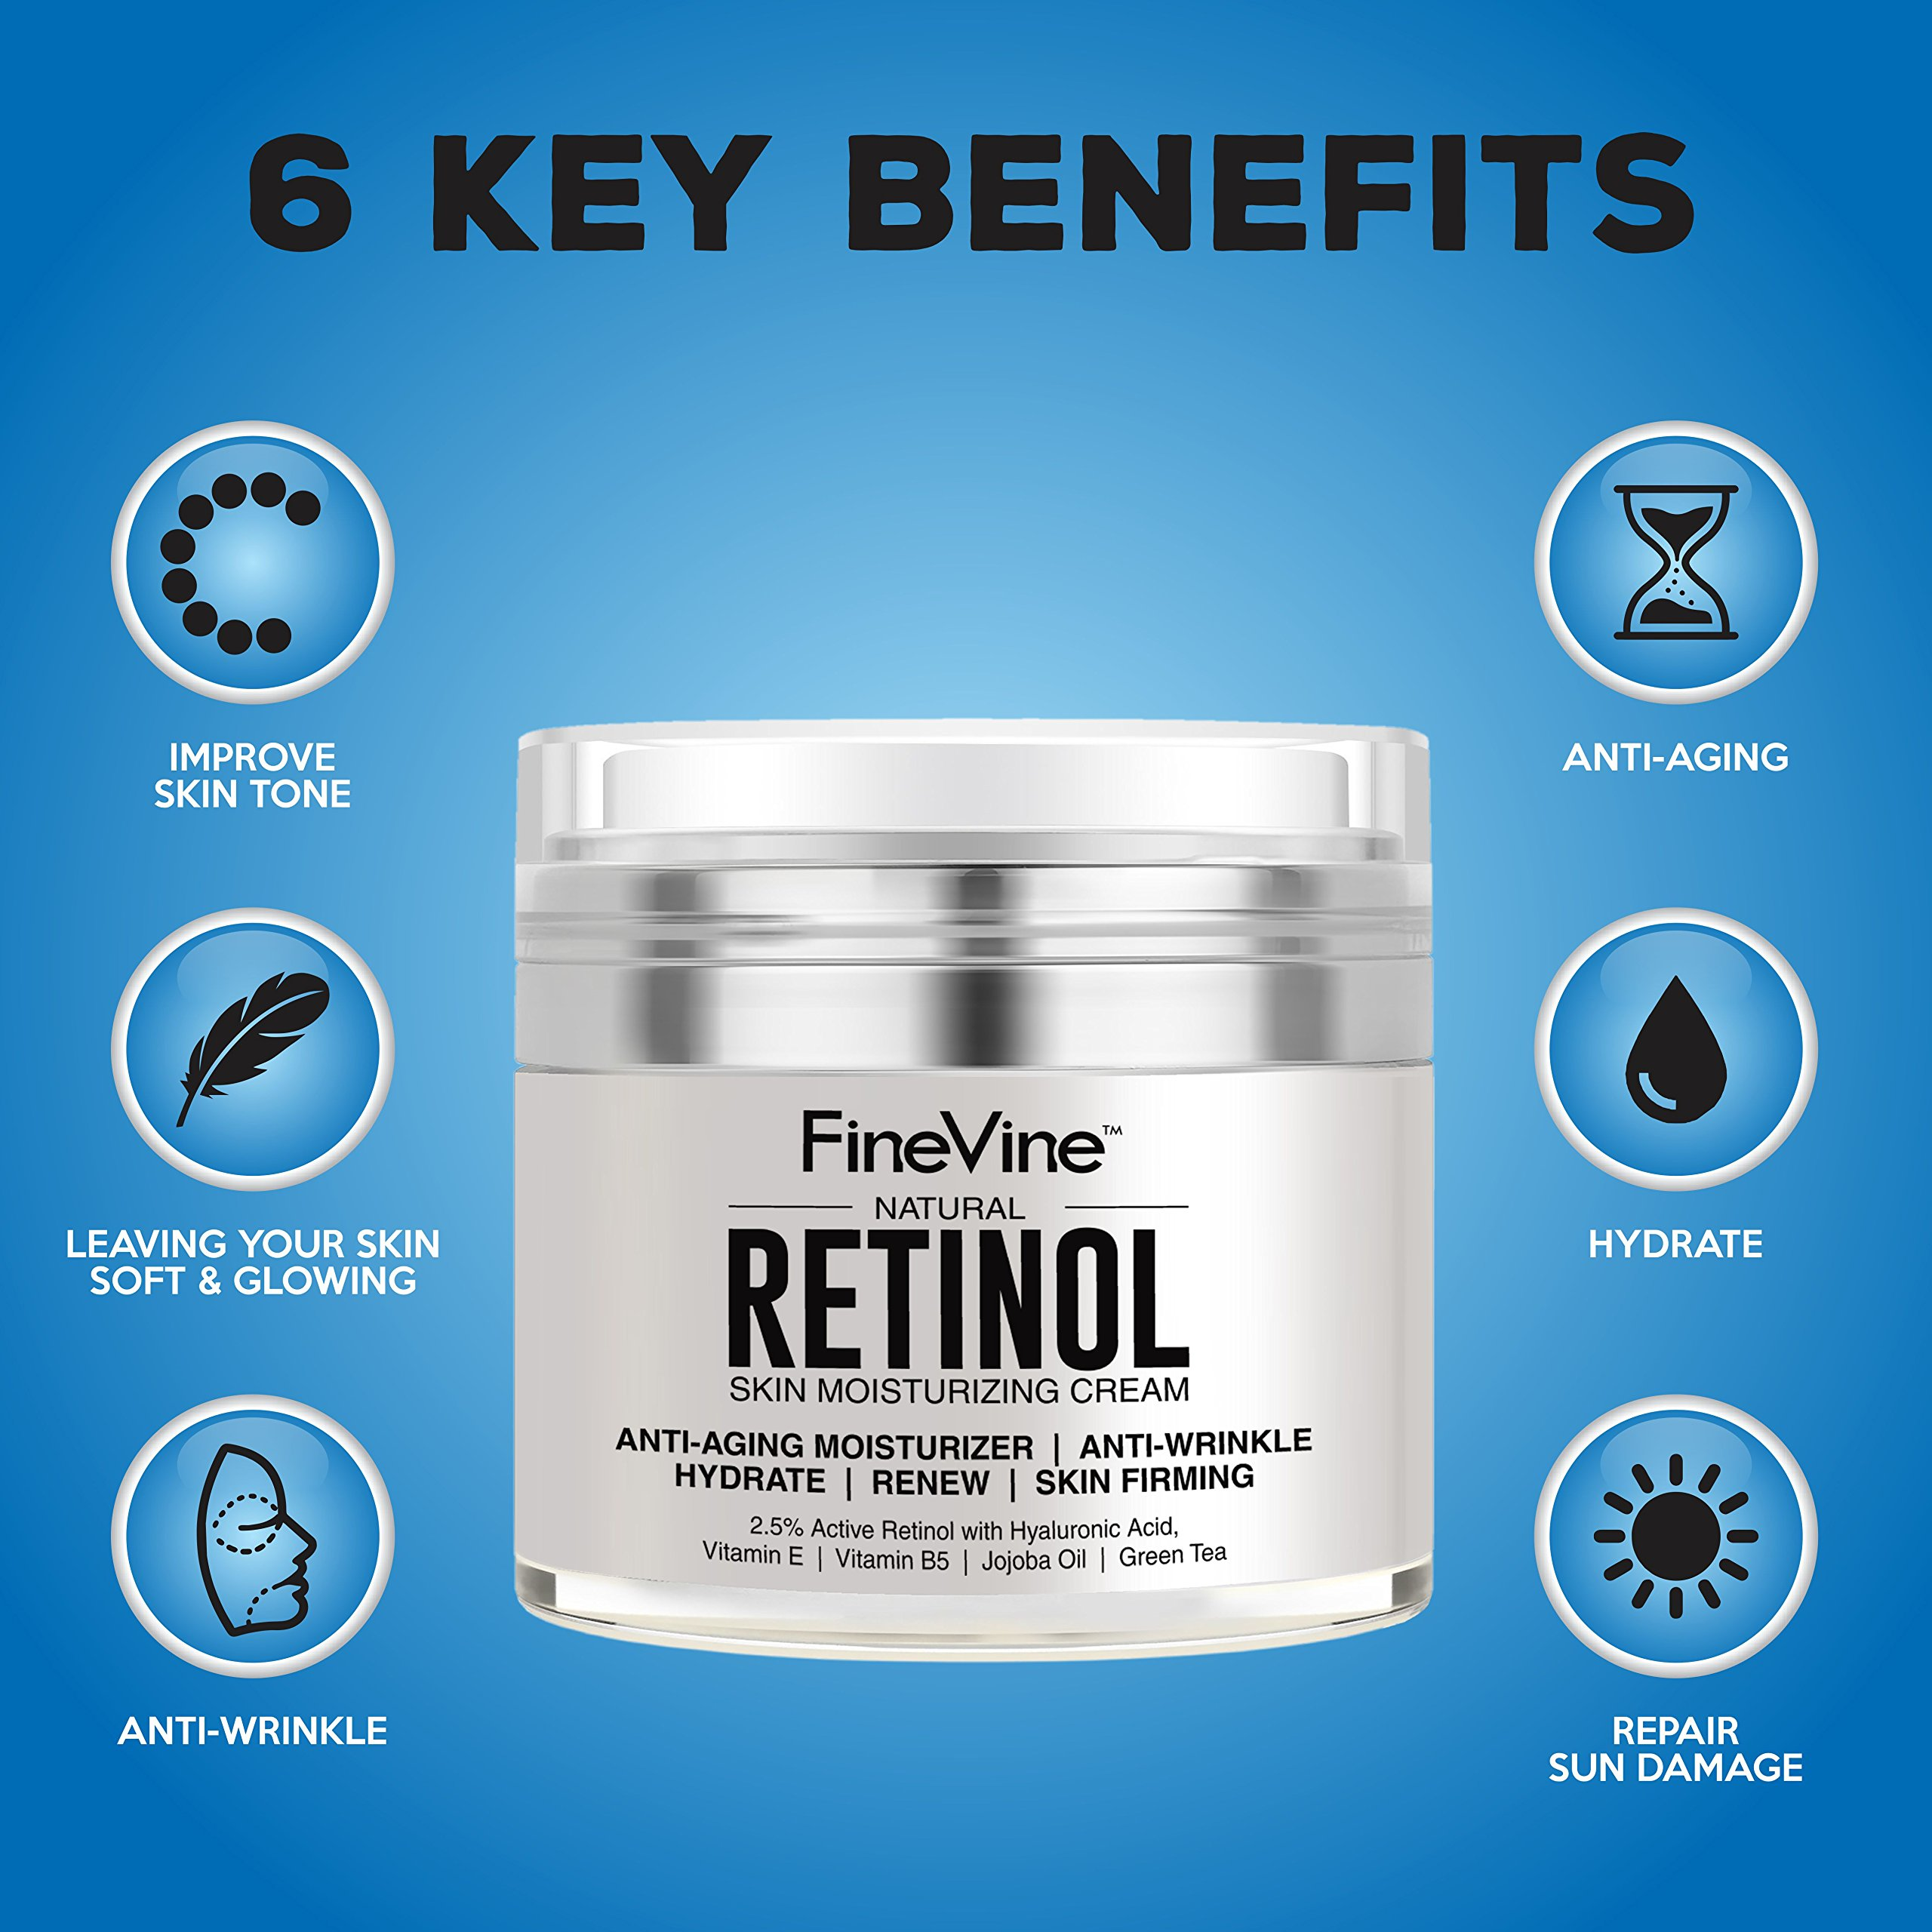 Retinol Moisturizer Cream for Face and Eye Area - Made in USA - with Hyaluronic Acid, Vitamin E - Best Day and Night Anti Aging Formula to Reduce Wrinkles, Fine Lines & Even Skin Tone. by FineVine (Image #8)